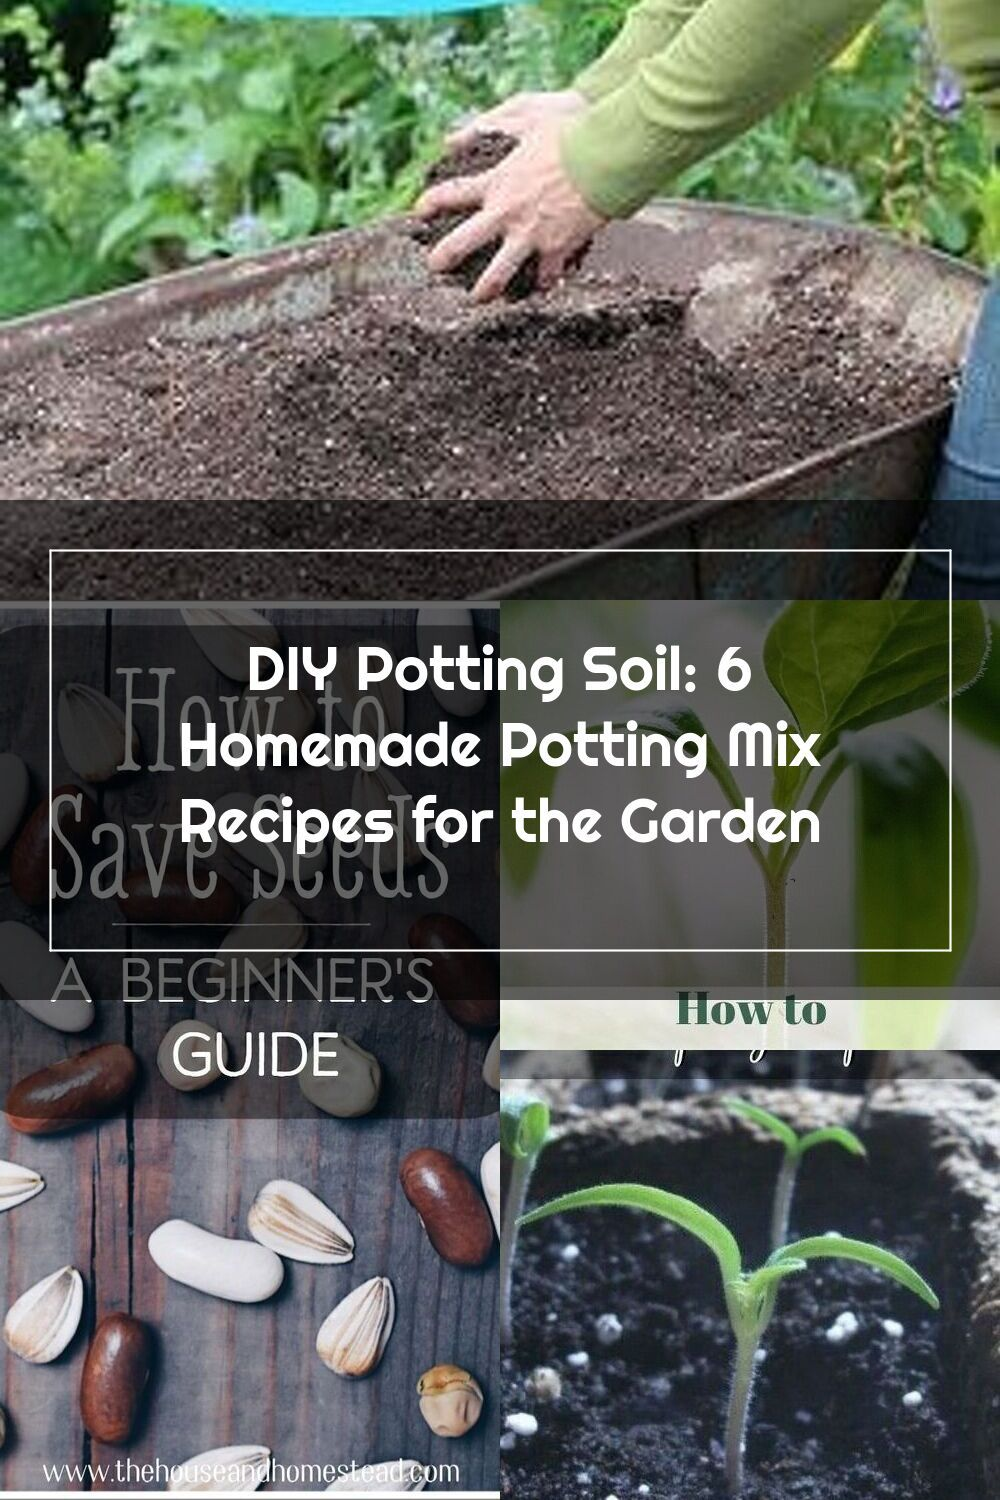 Diy potting soil recipes for seed starting container